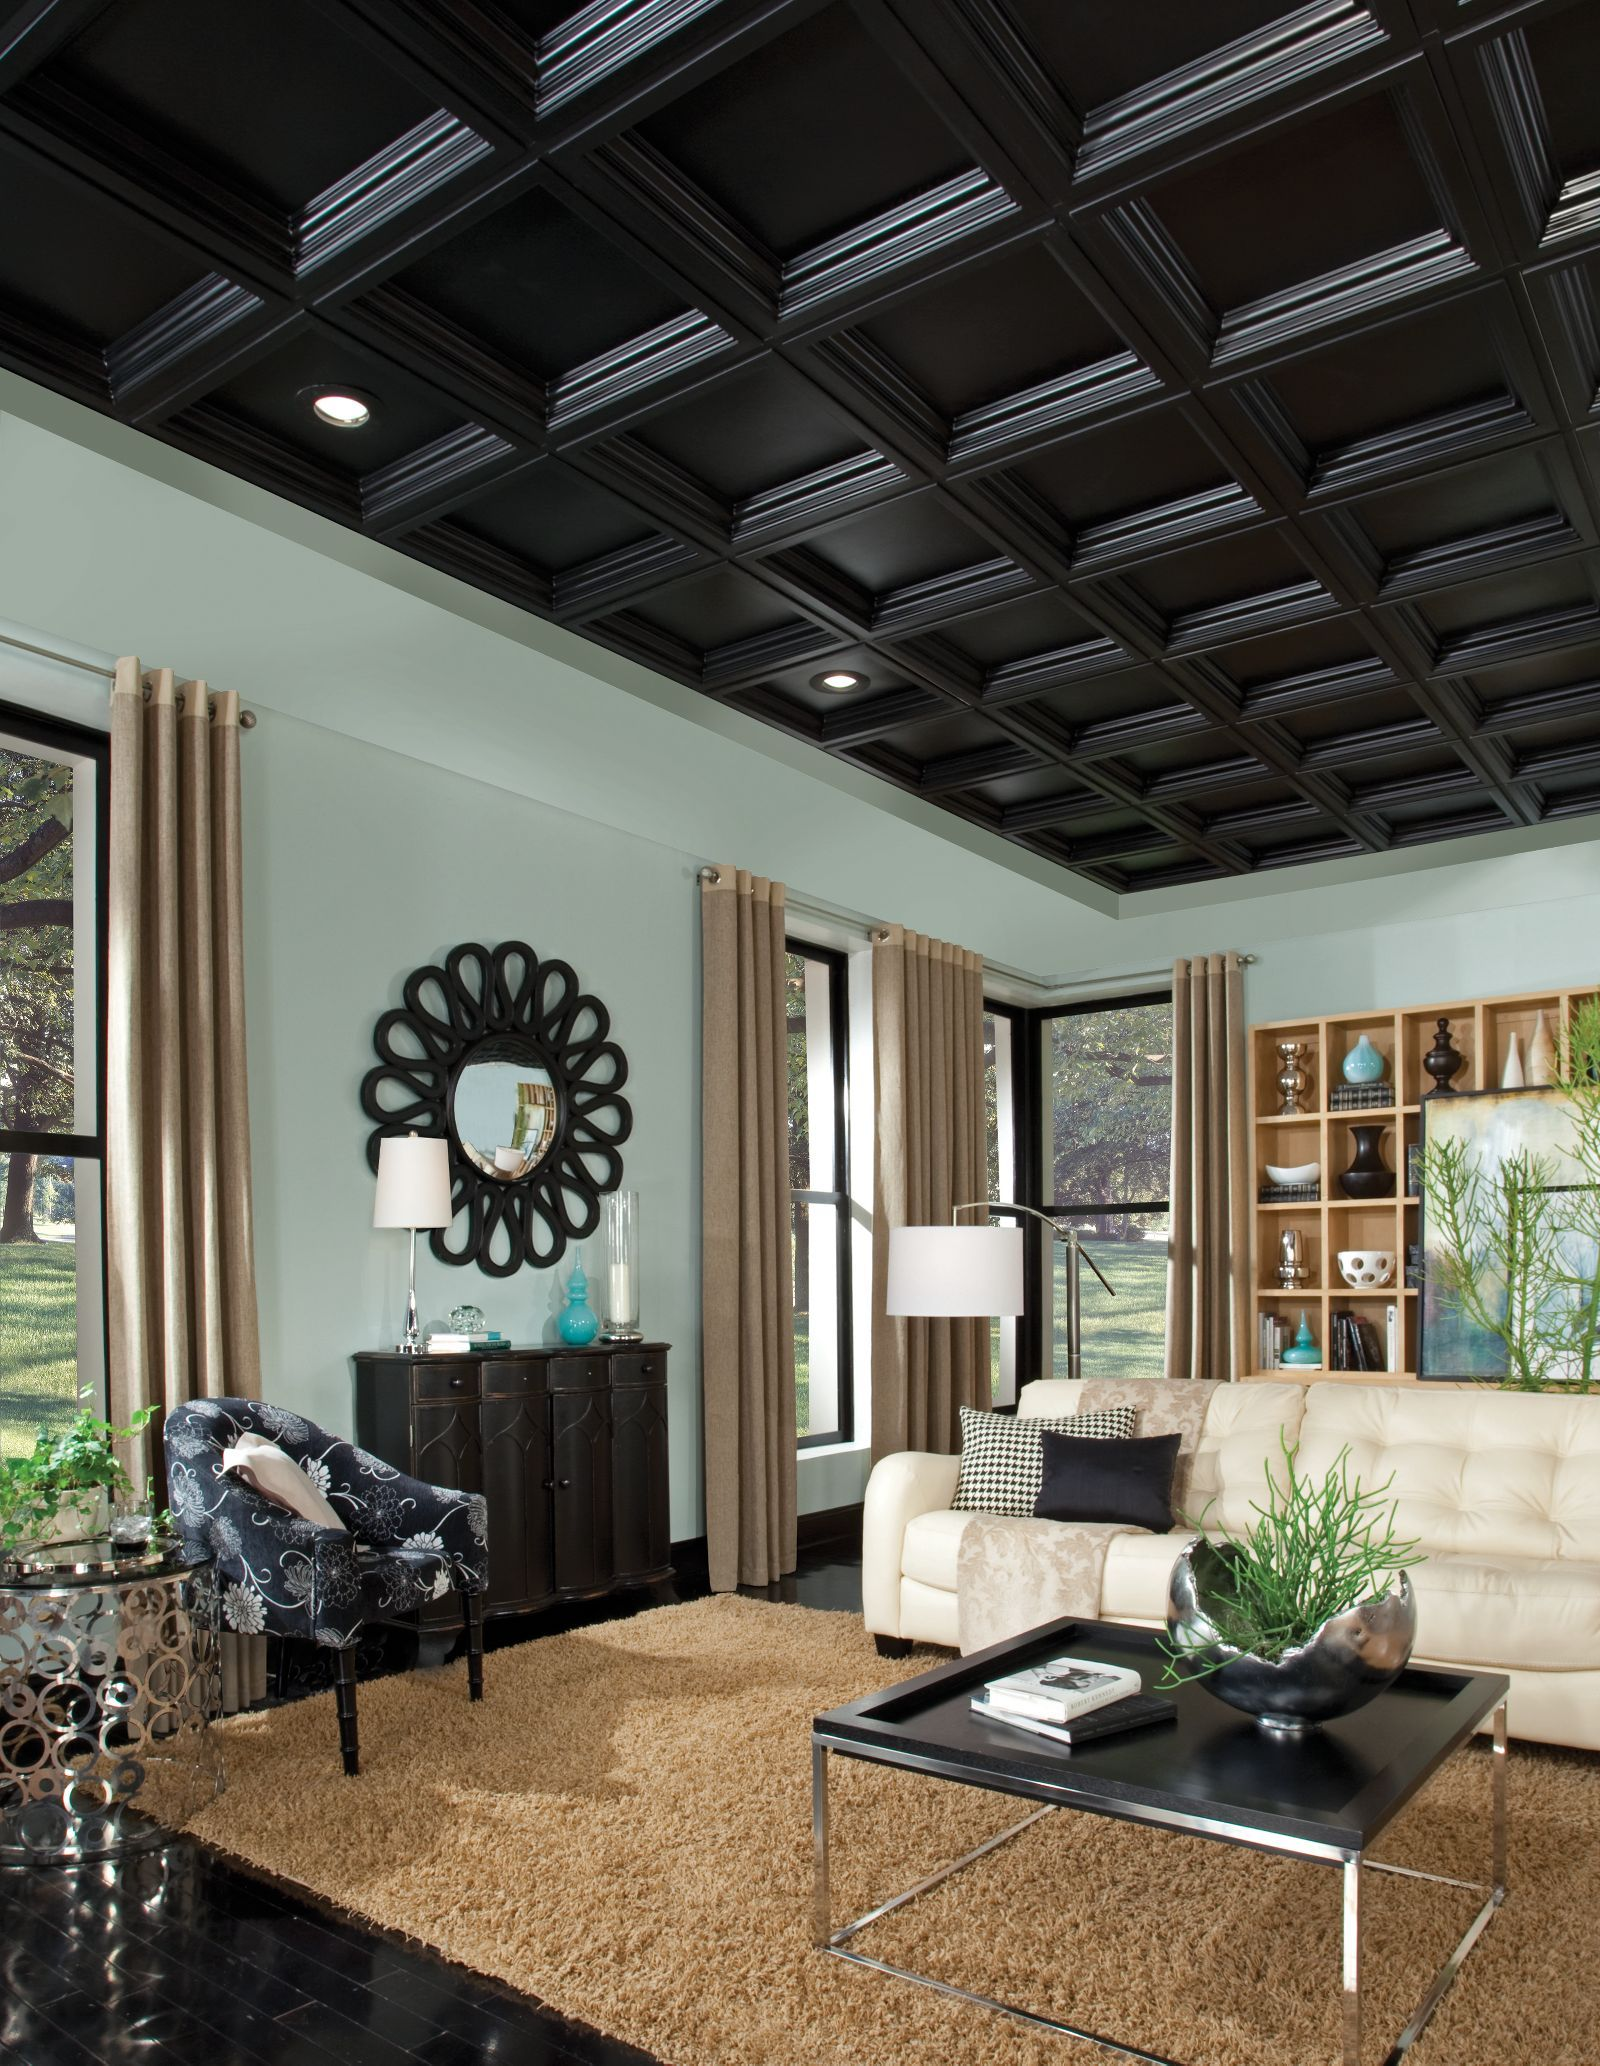 Coffered ceiling tiles can give any ceiling a dramatic appearance coffered ceiling tiles can give any ceiling a dramatic appearance perfect for basements or any dailygadgetfo Image collections